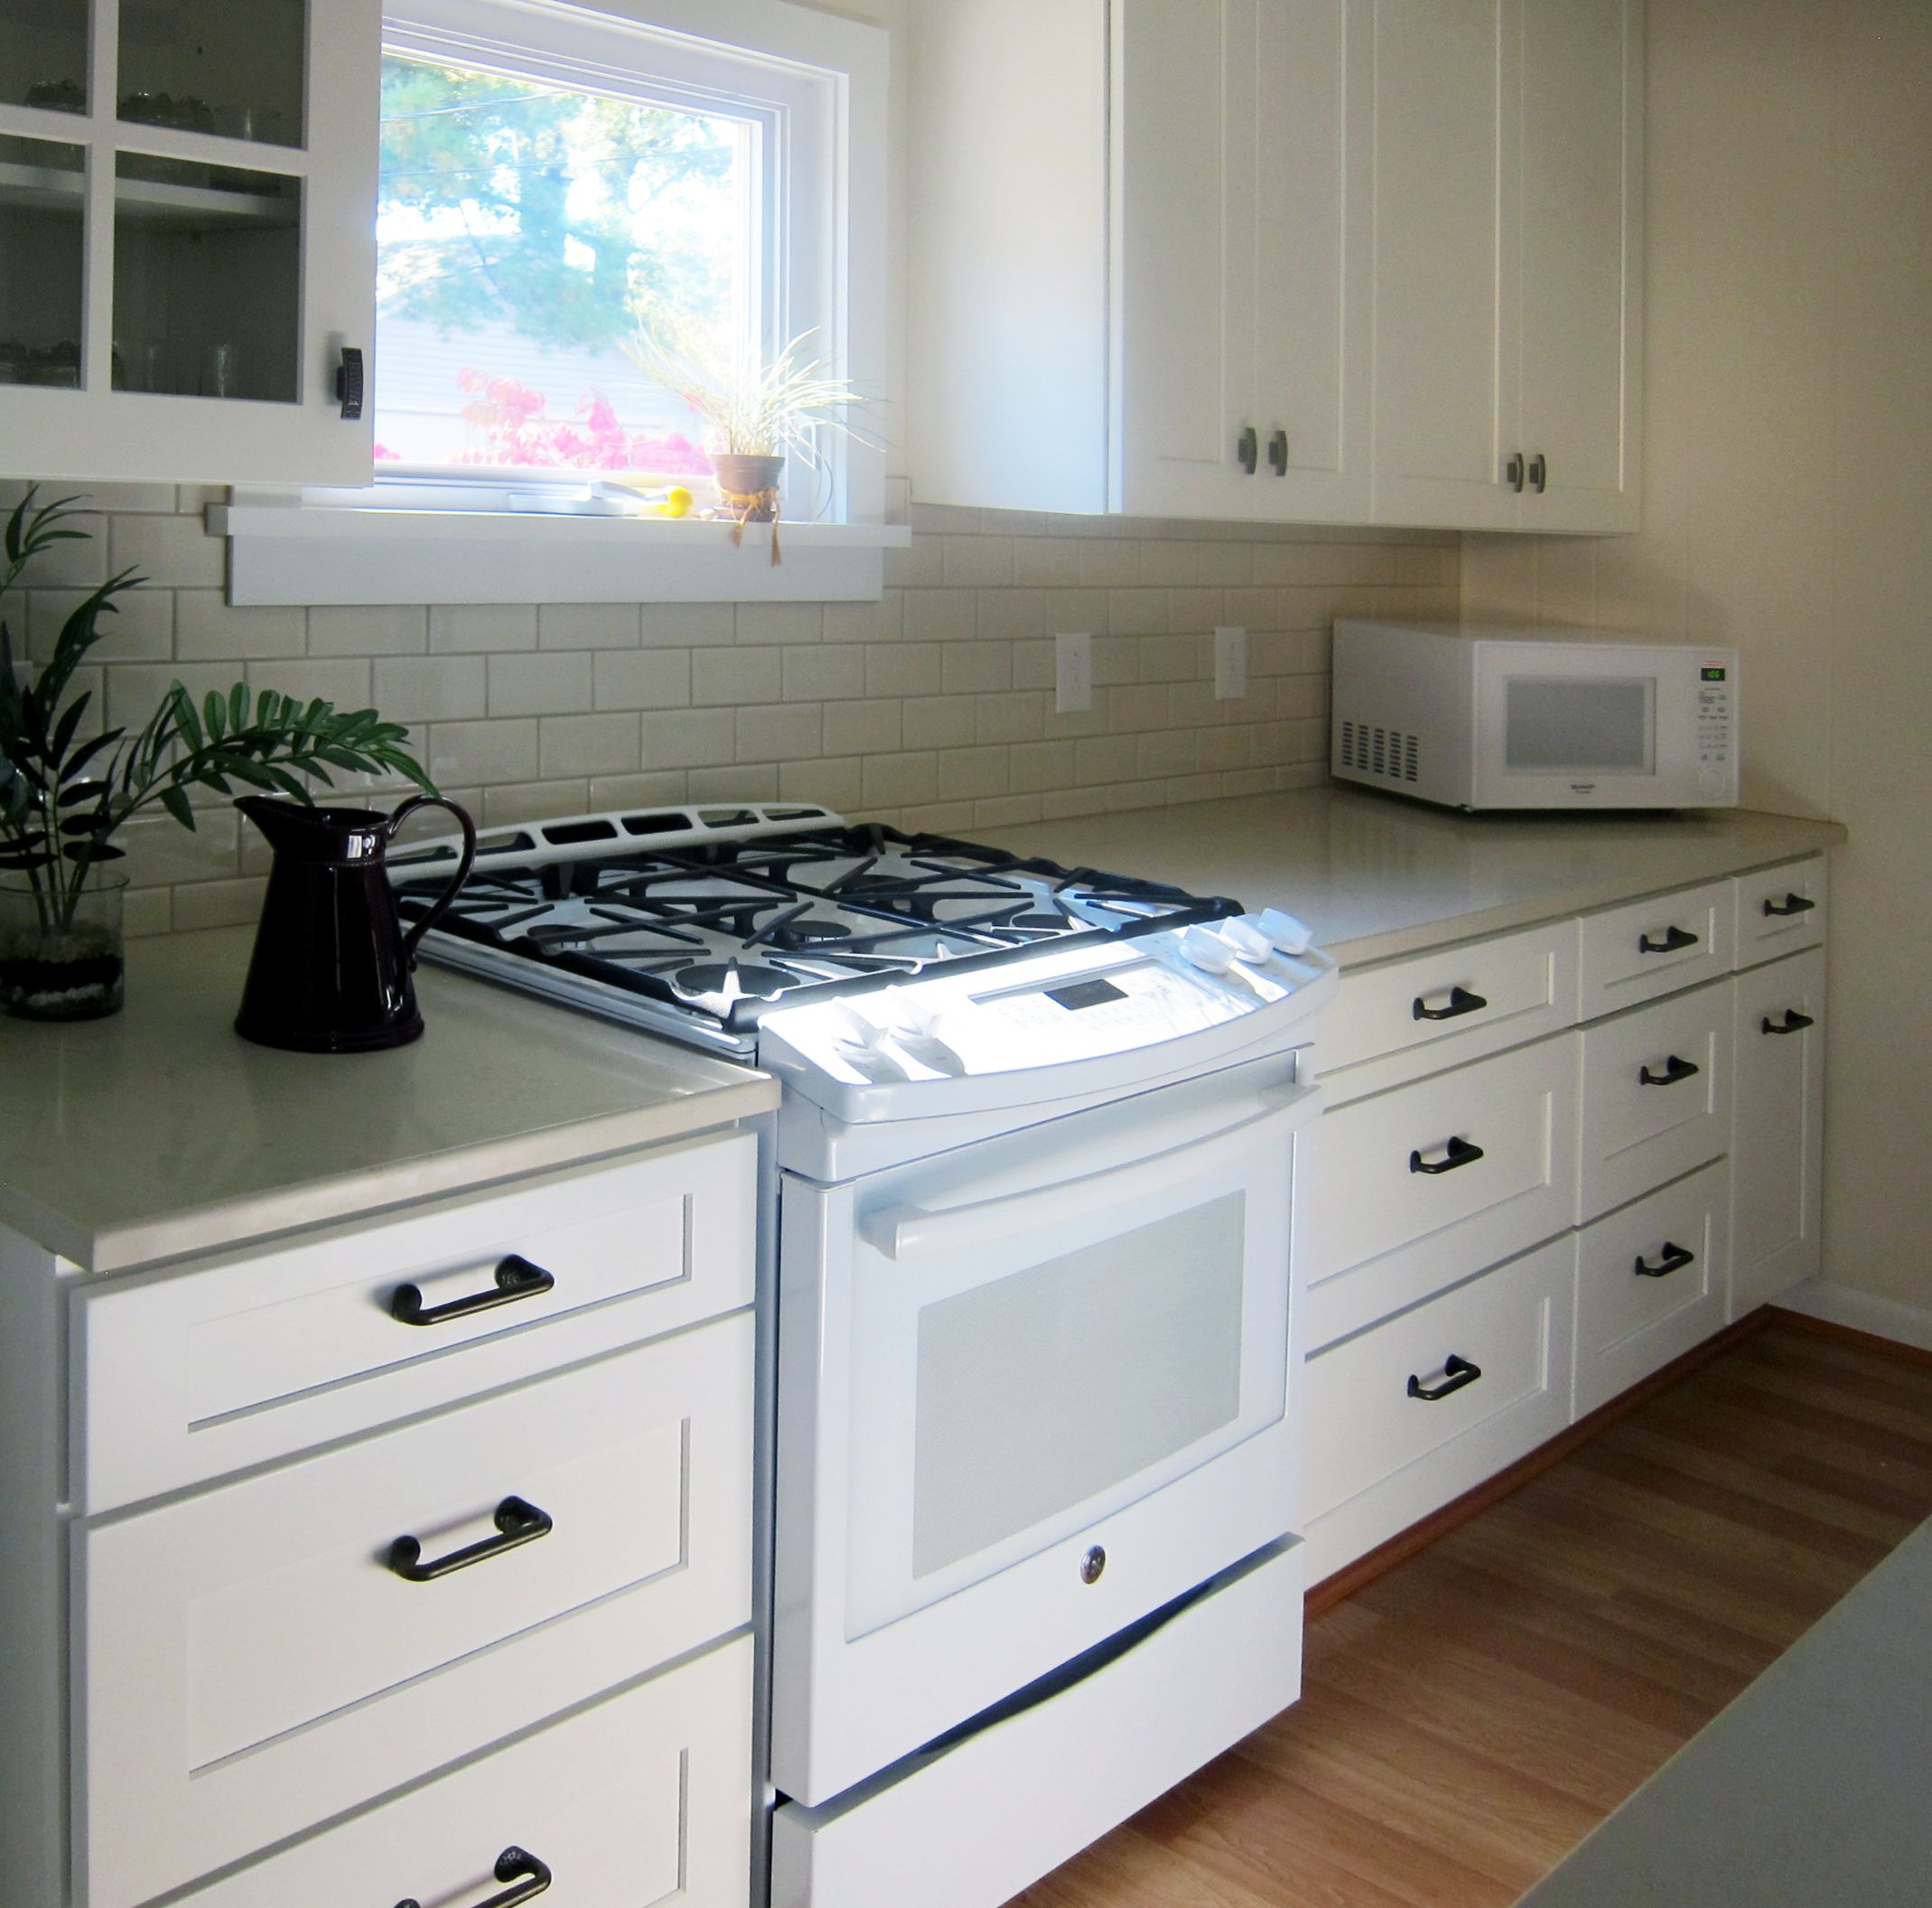 I Used Faircrest Shaker White Kitchen Cabinets. The